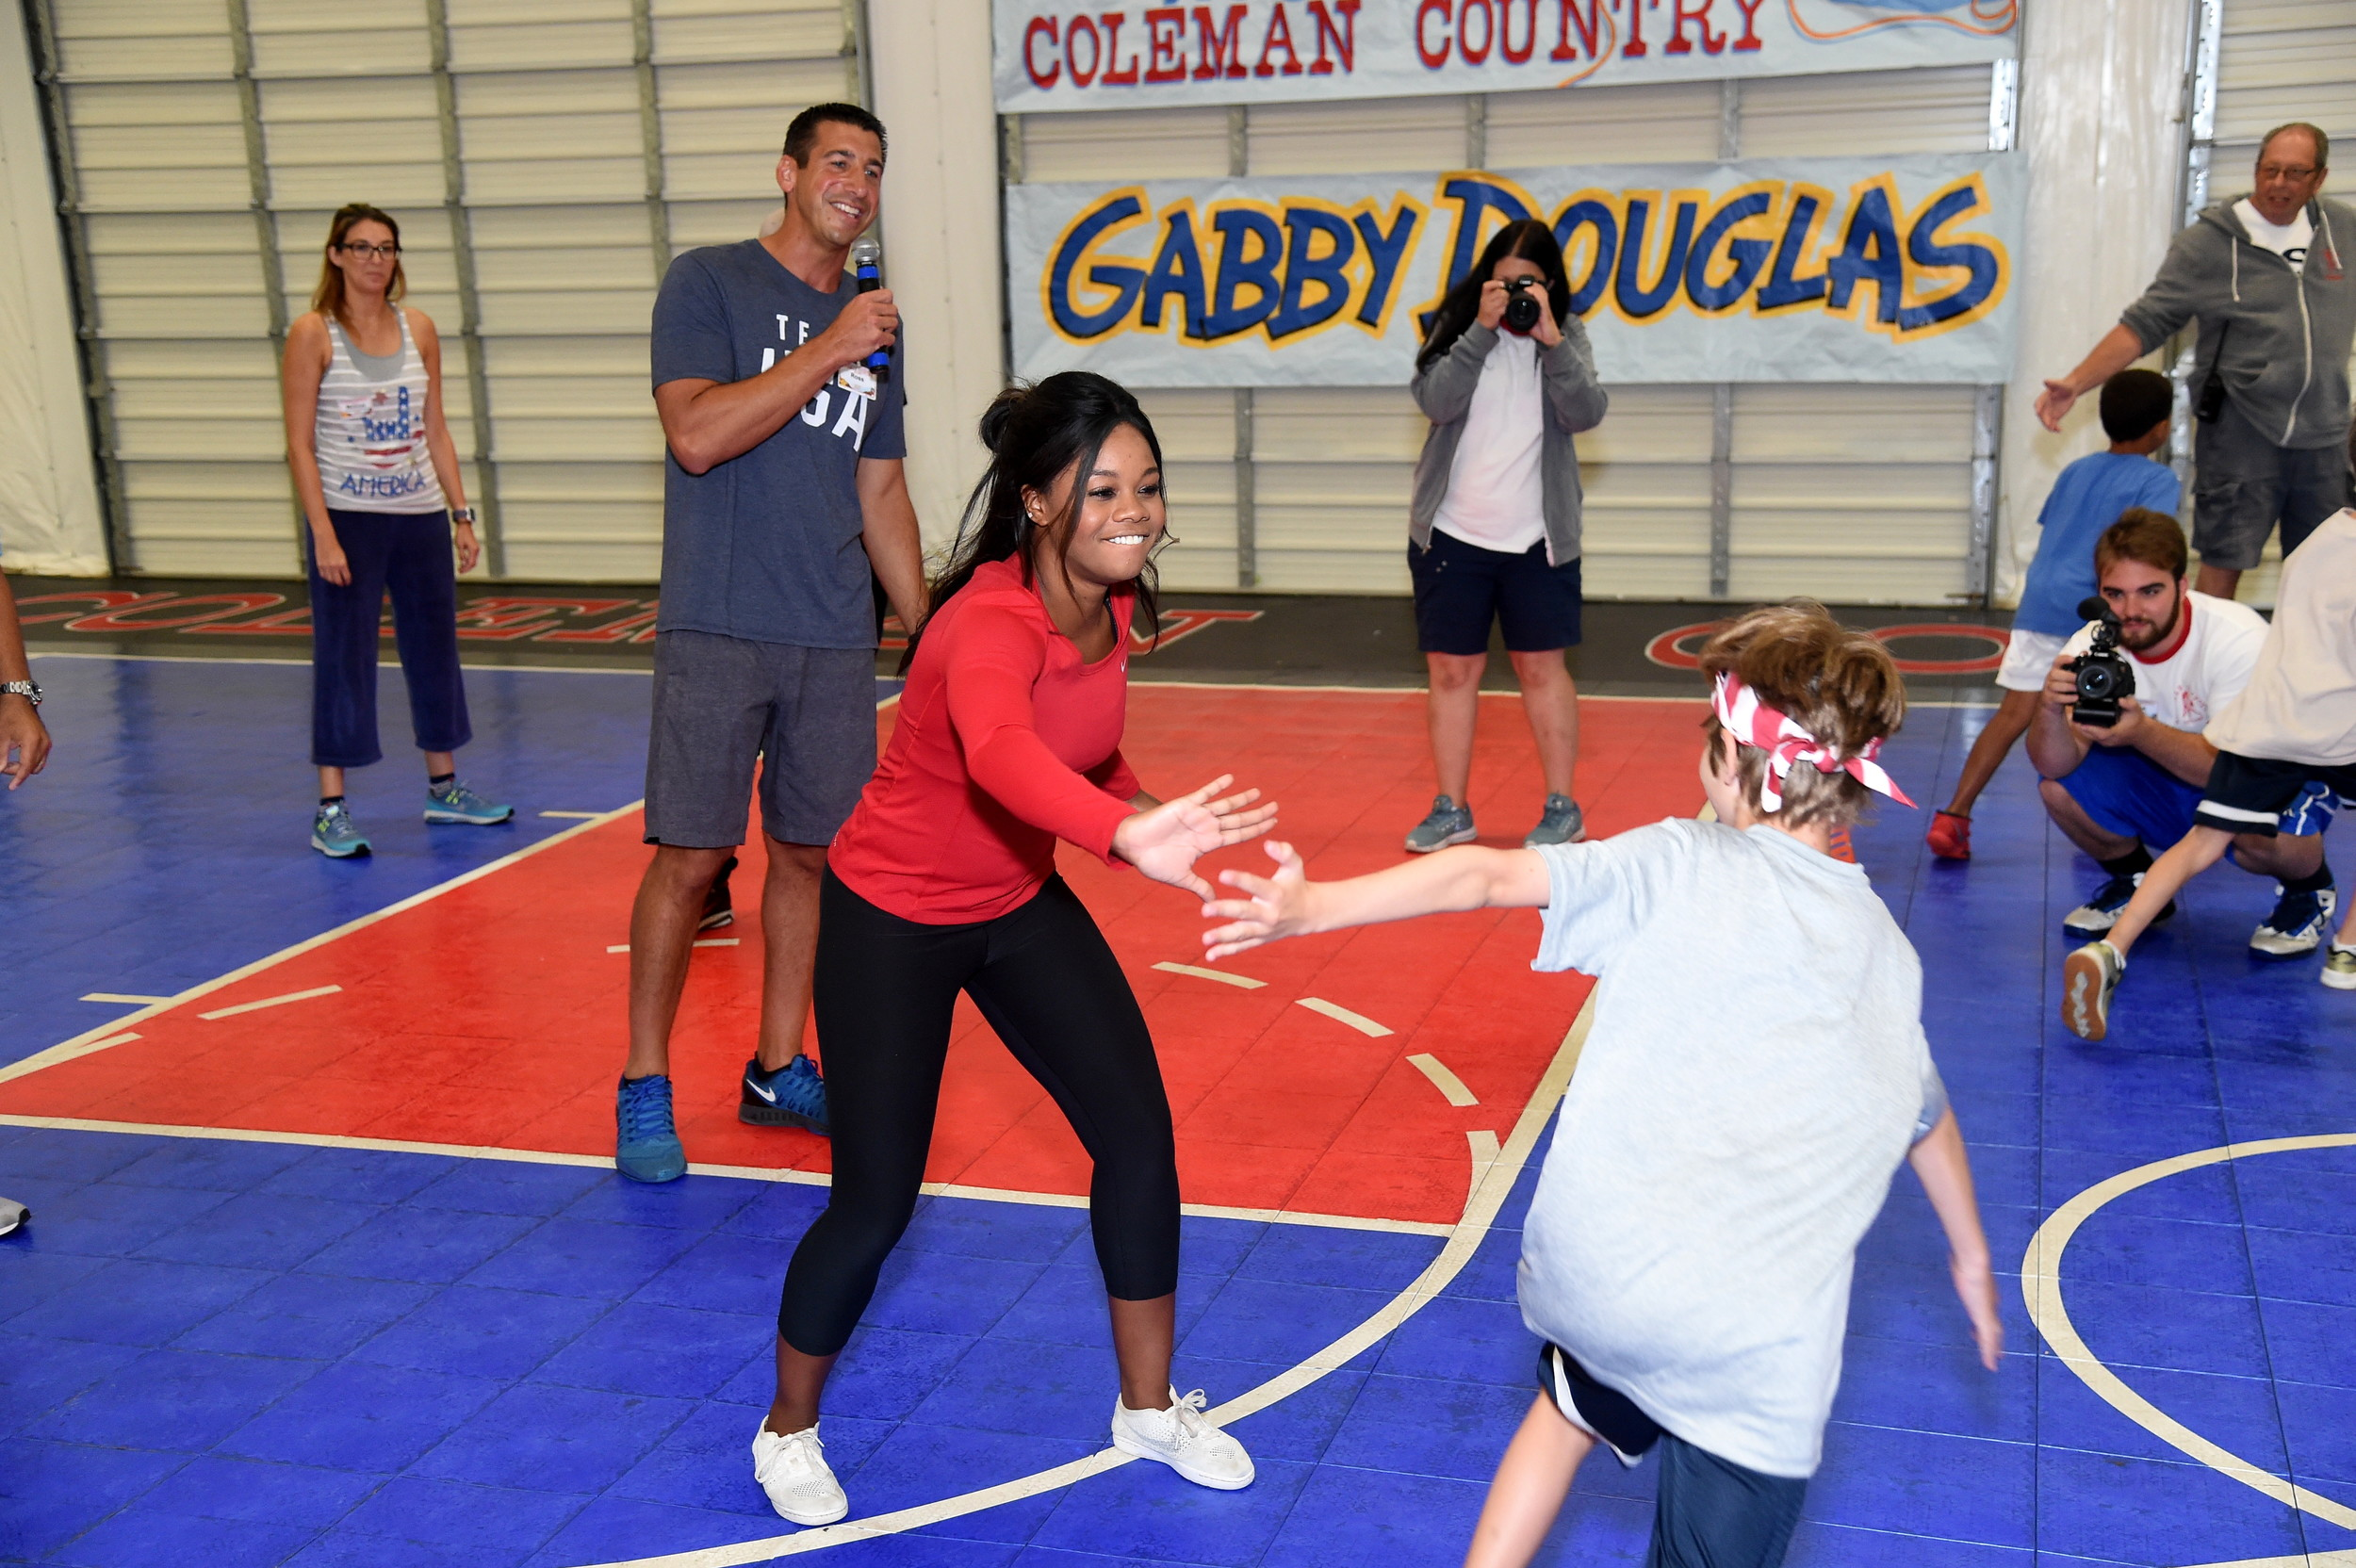 Gabby Douglas, a three-time Olympic gold medalist, made it a point to high-five everyone should could during her visit to Coleman Country Day Camp.